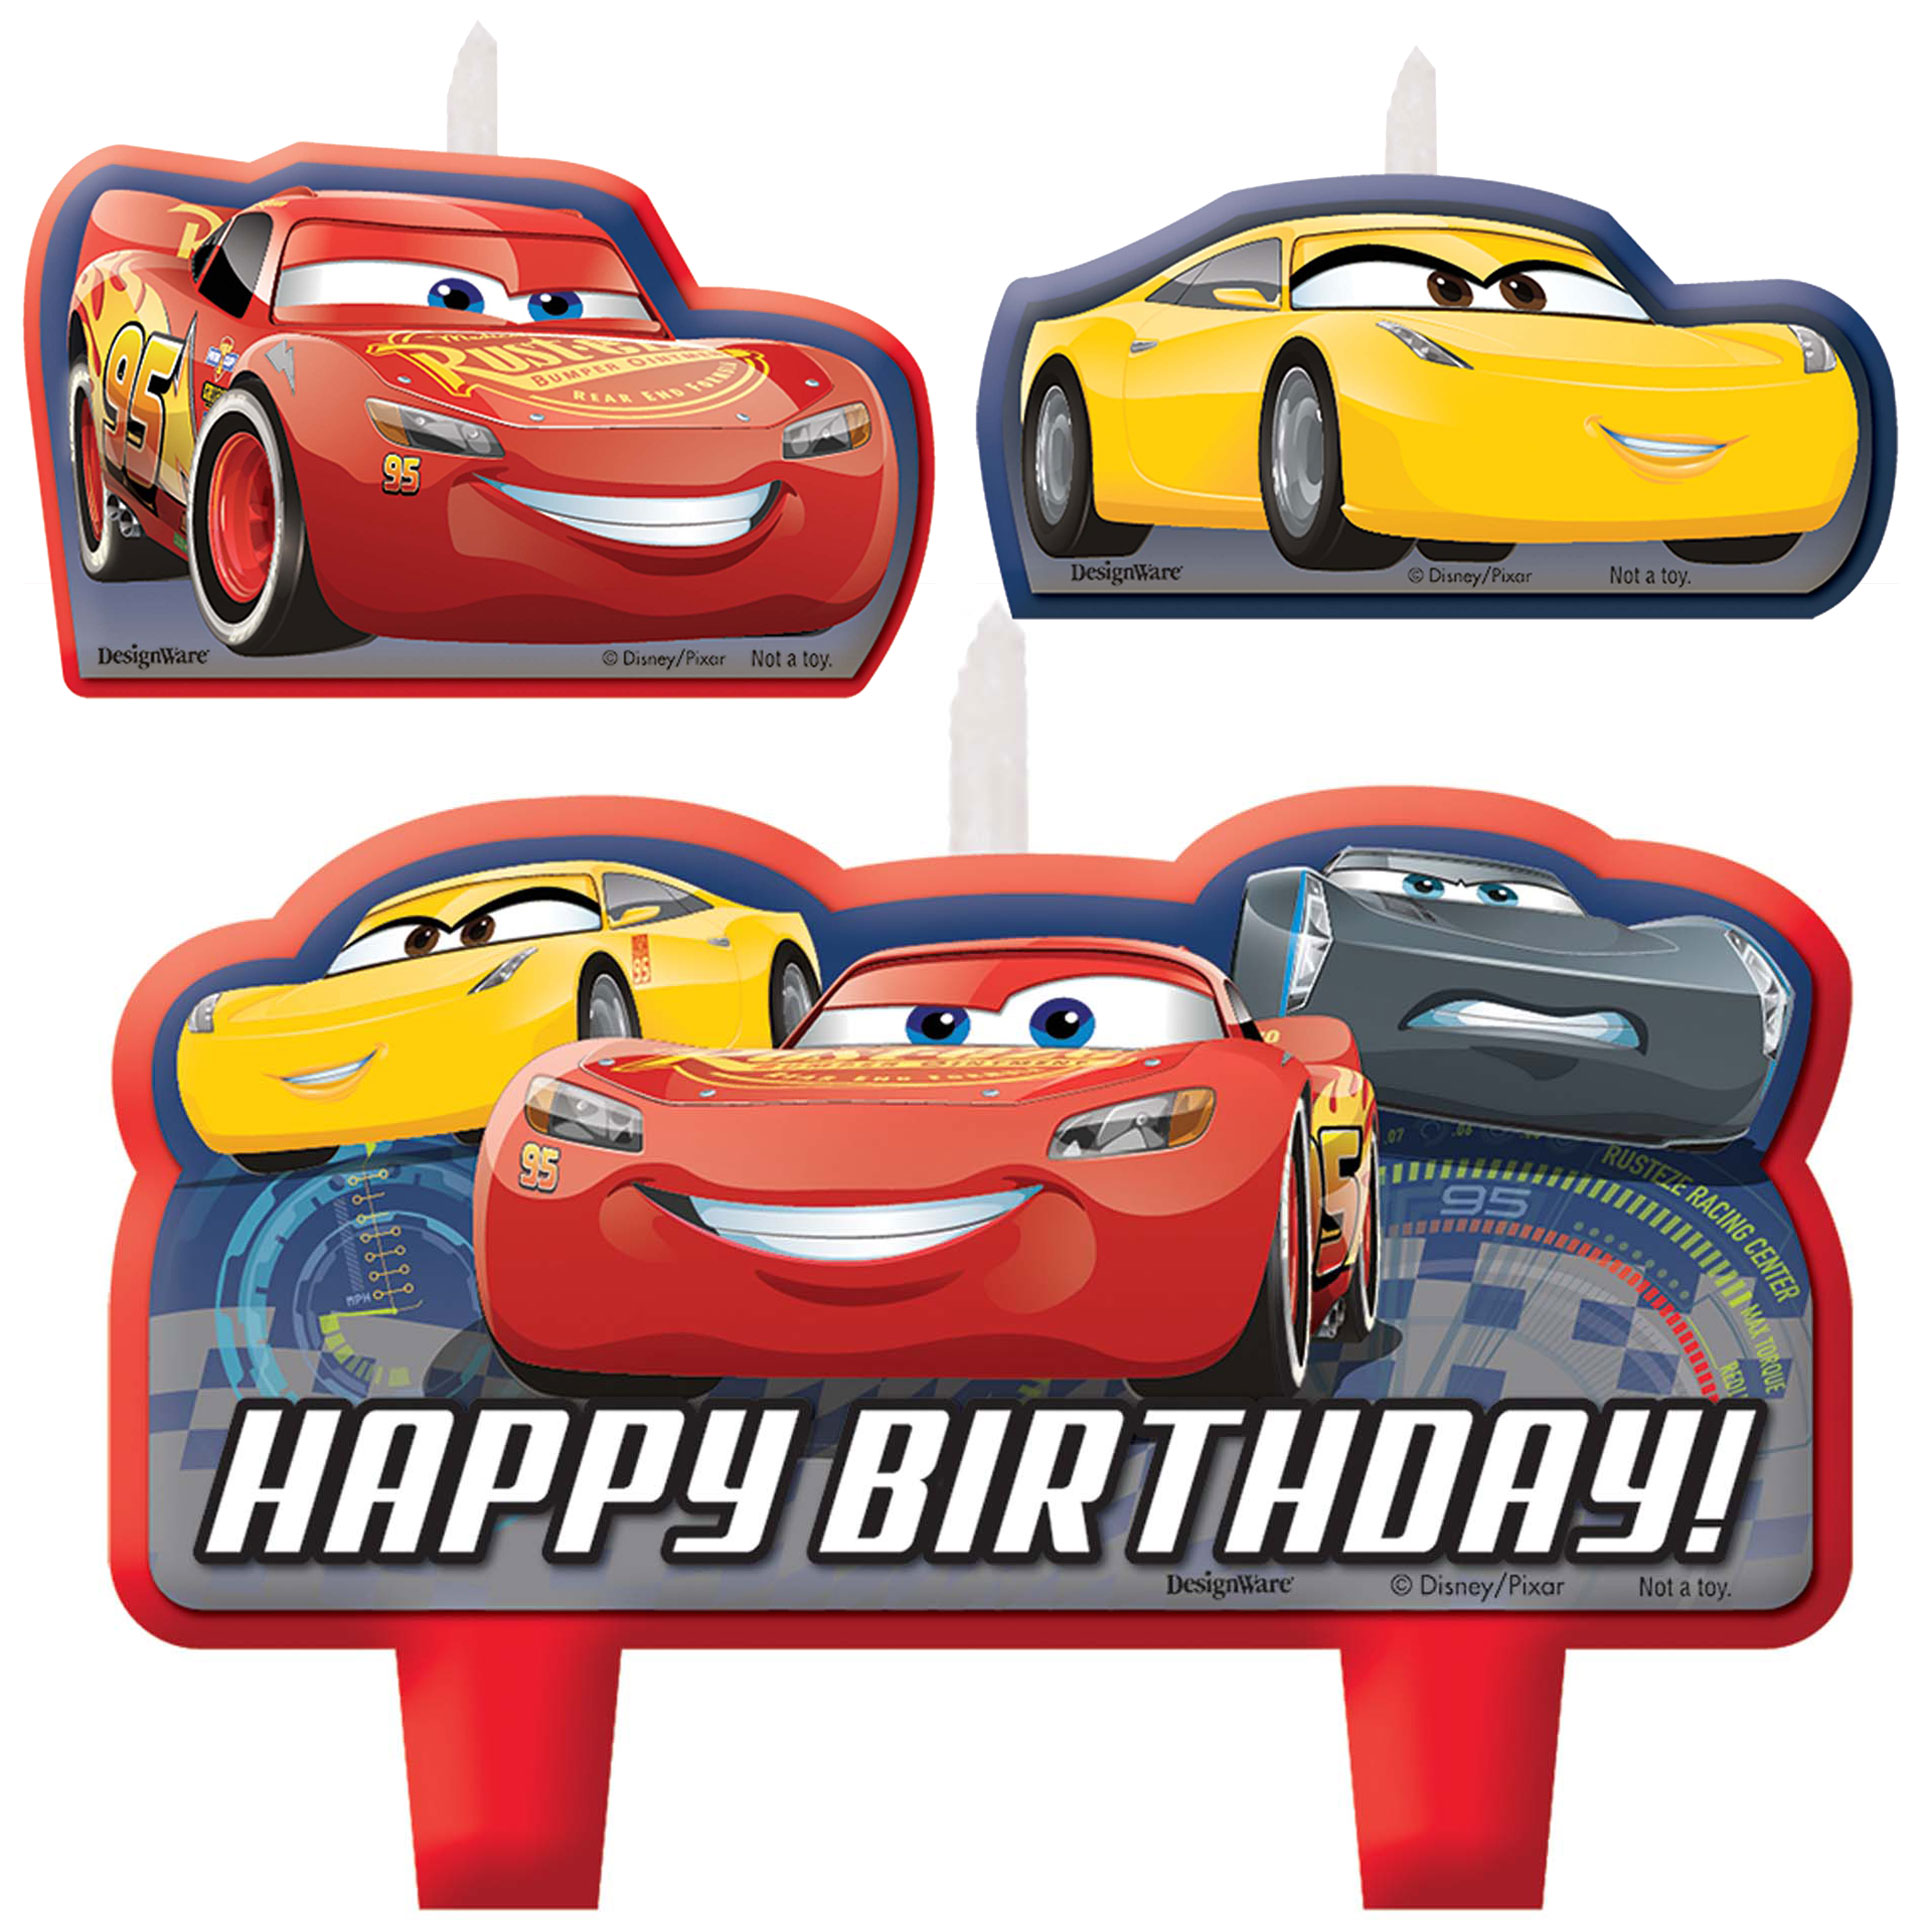 Cars clipart happy birthday. Disney party supplies theme